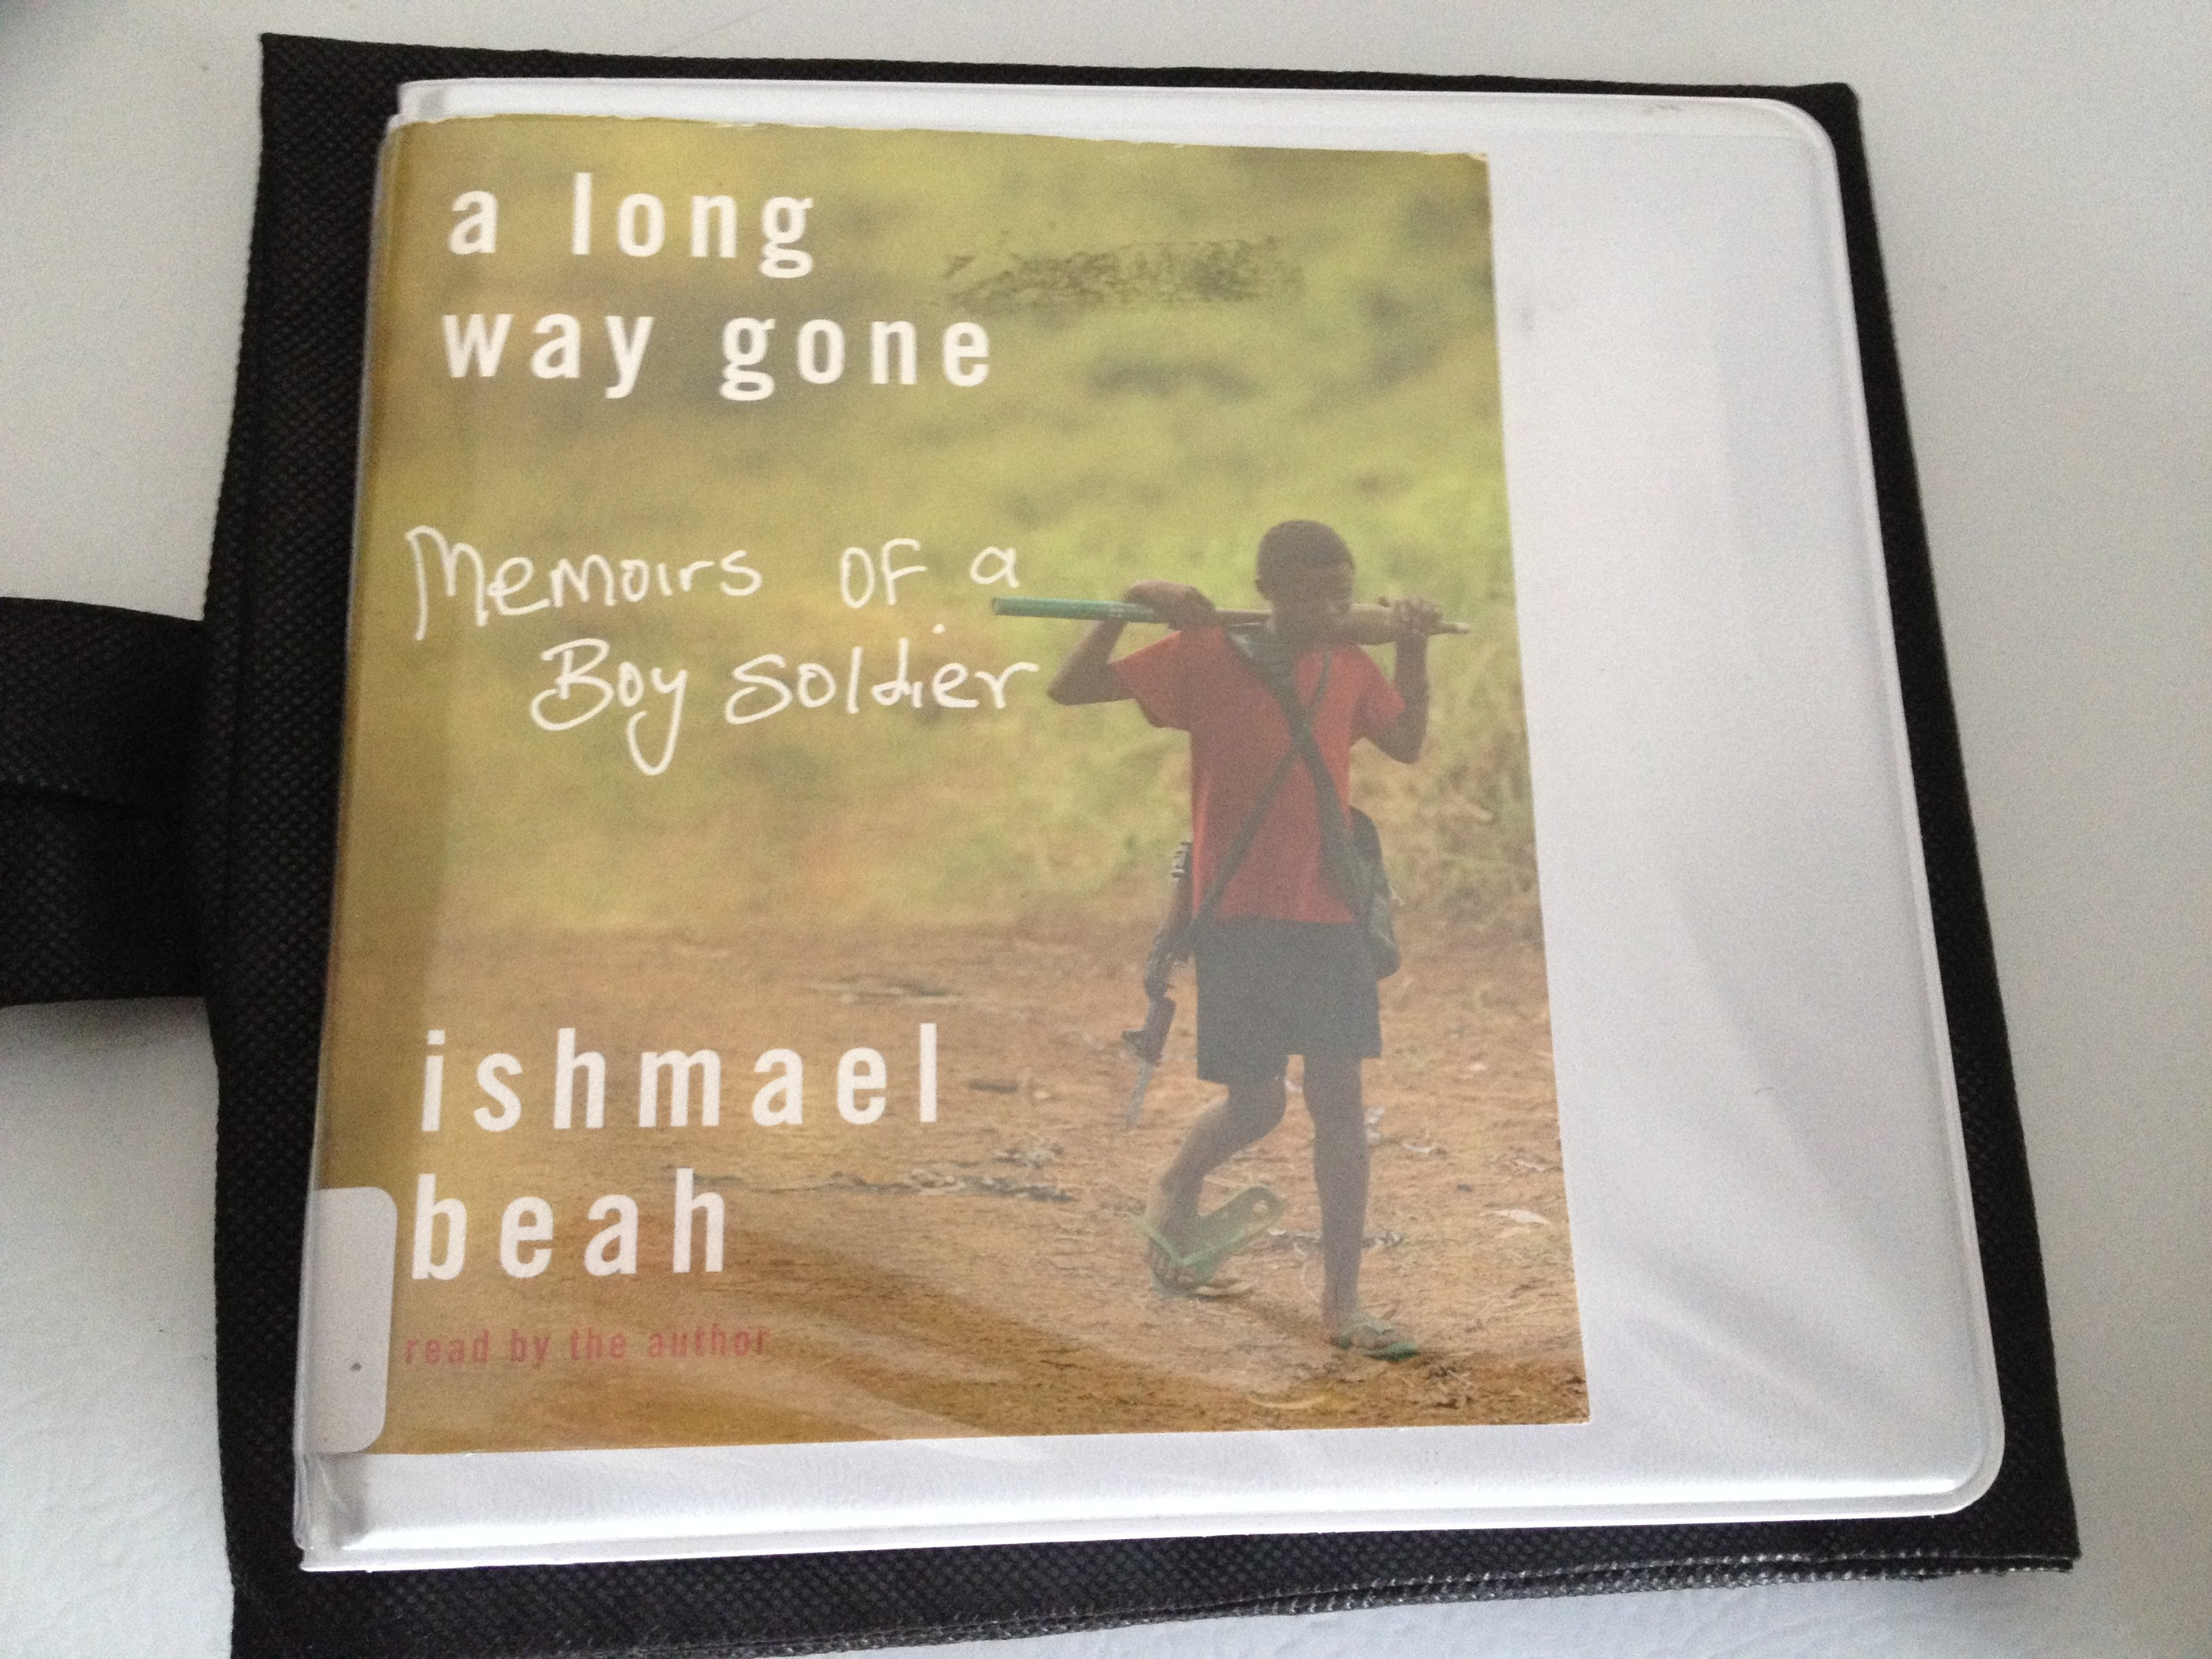 a long way gone book review This is a study guide for the book a long way gone written by ishmael beah a long way gone: memoirs of a boy soldier is a memoir written by ishmael beah published.